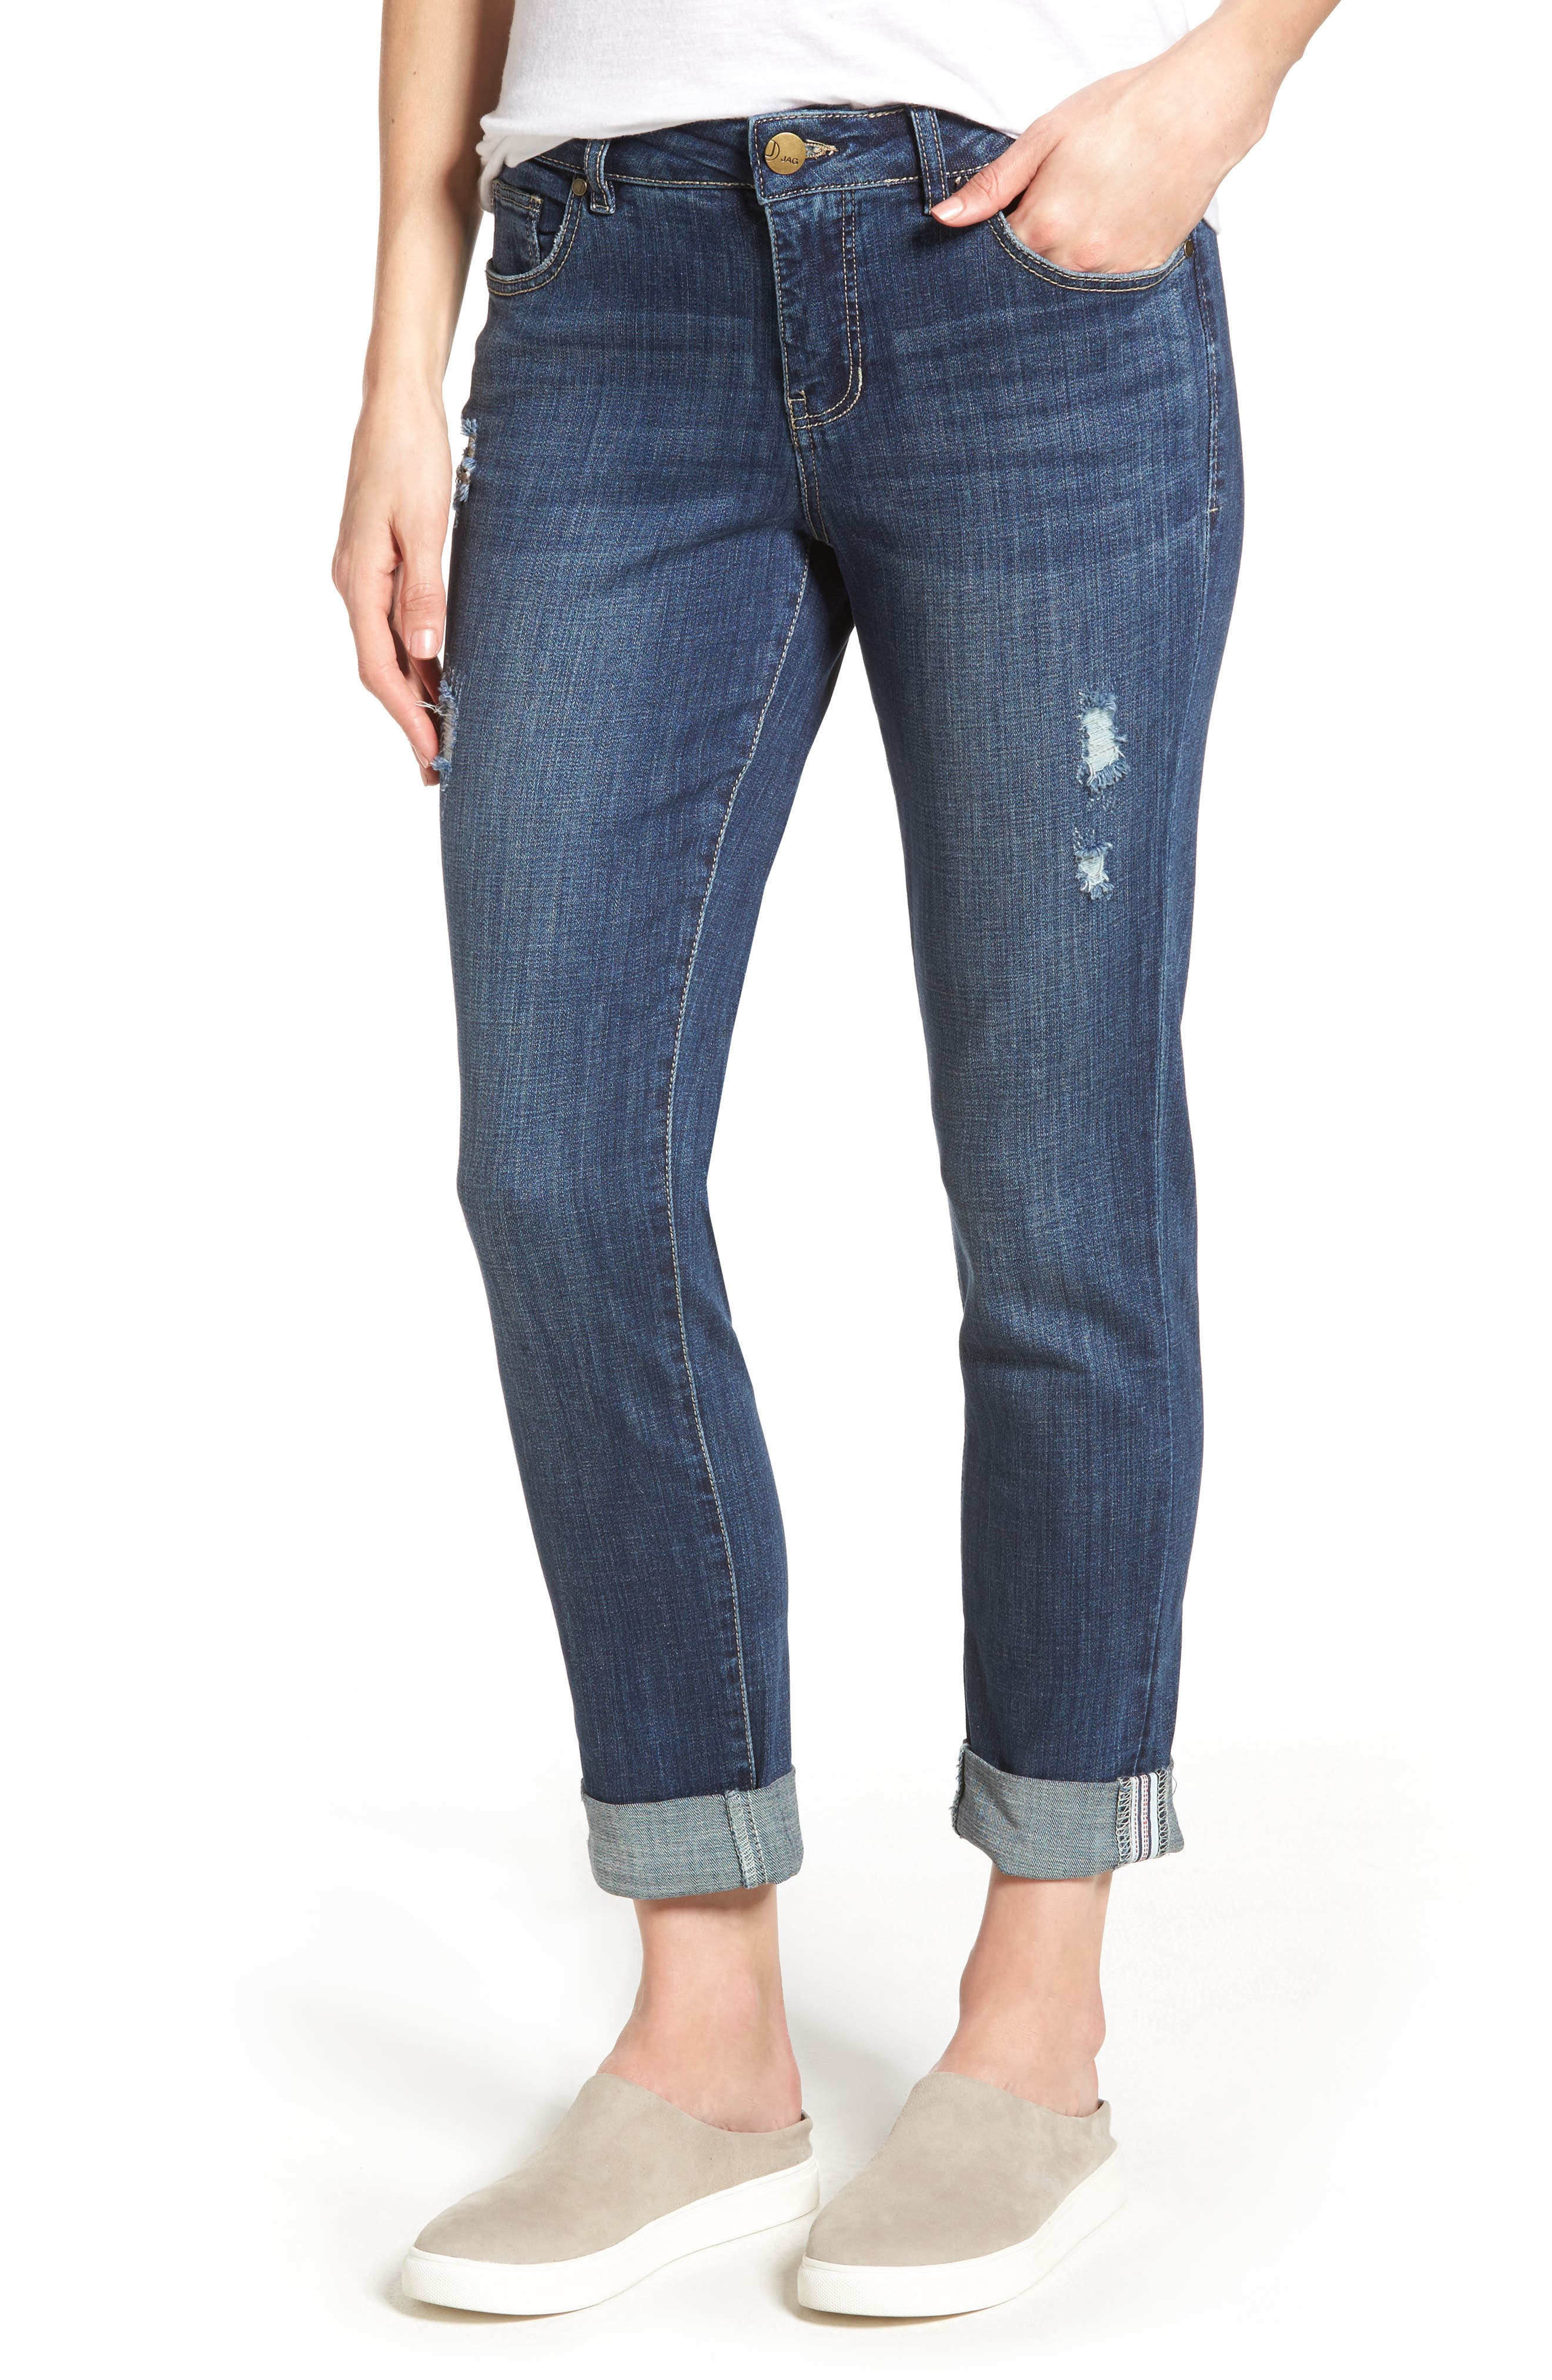 Main Image - Jag Jeans Carter Cuffed Stretch Girlfriend Jeans